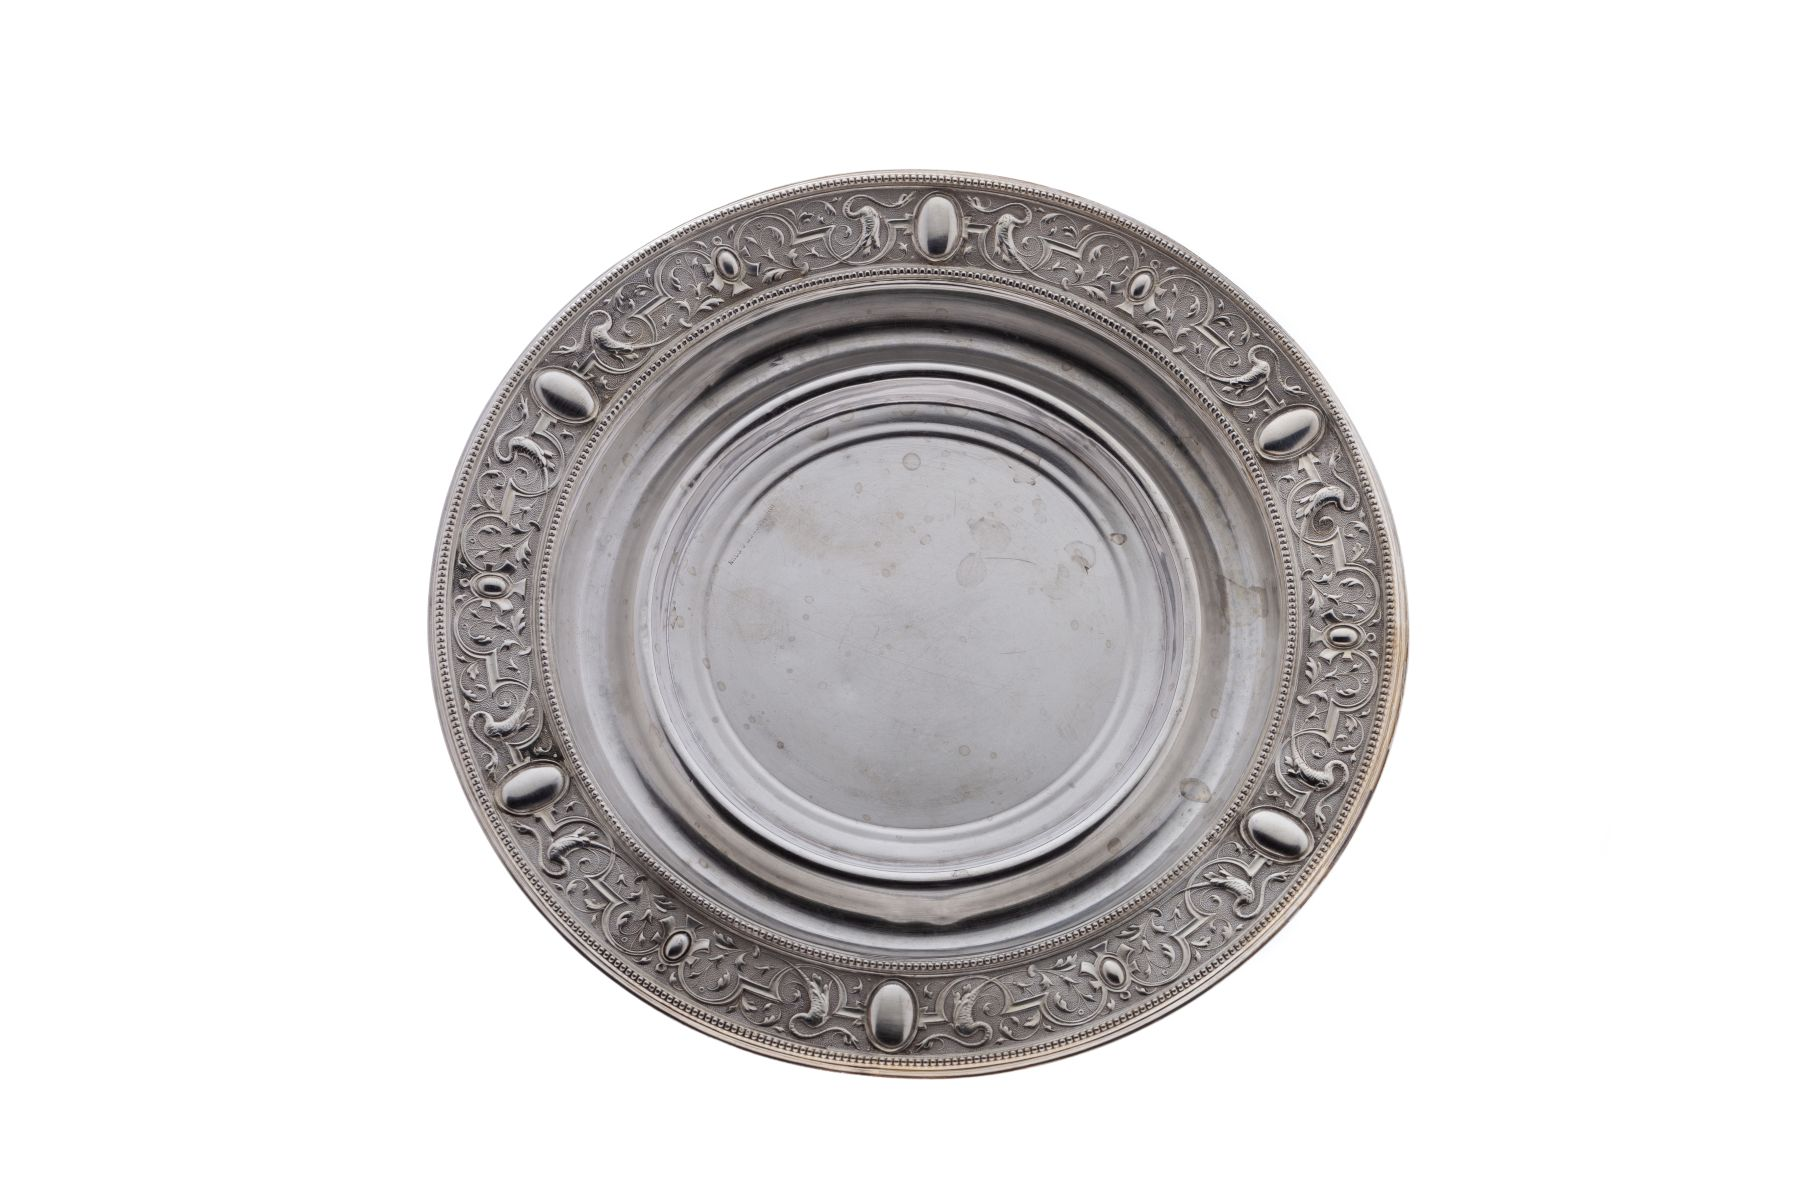 #25 A silver plate | Teller Image